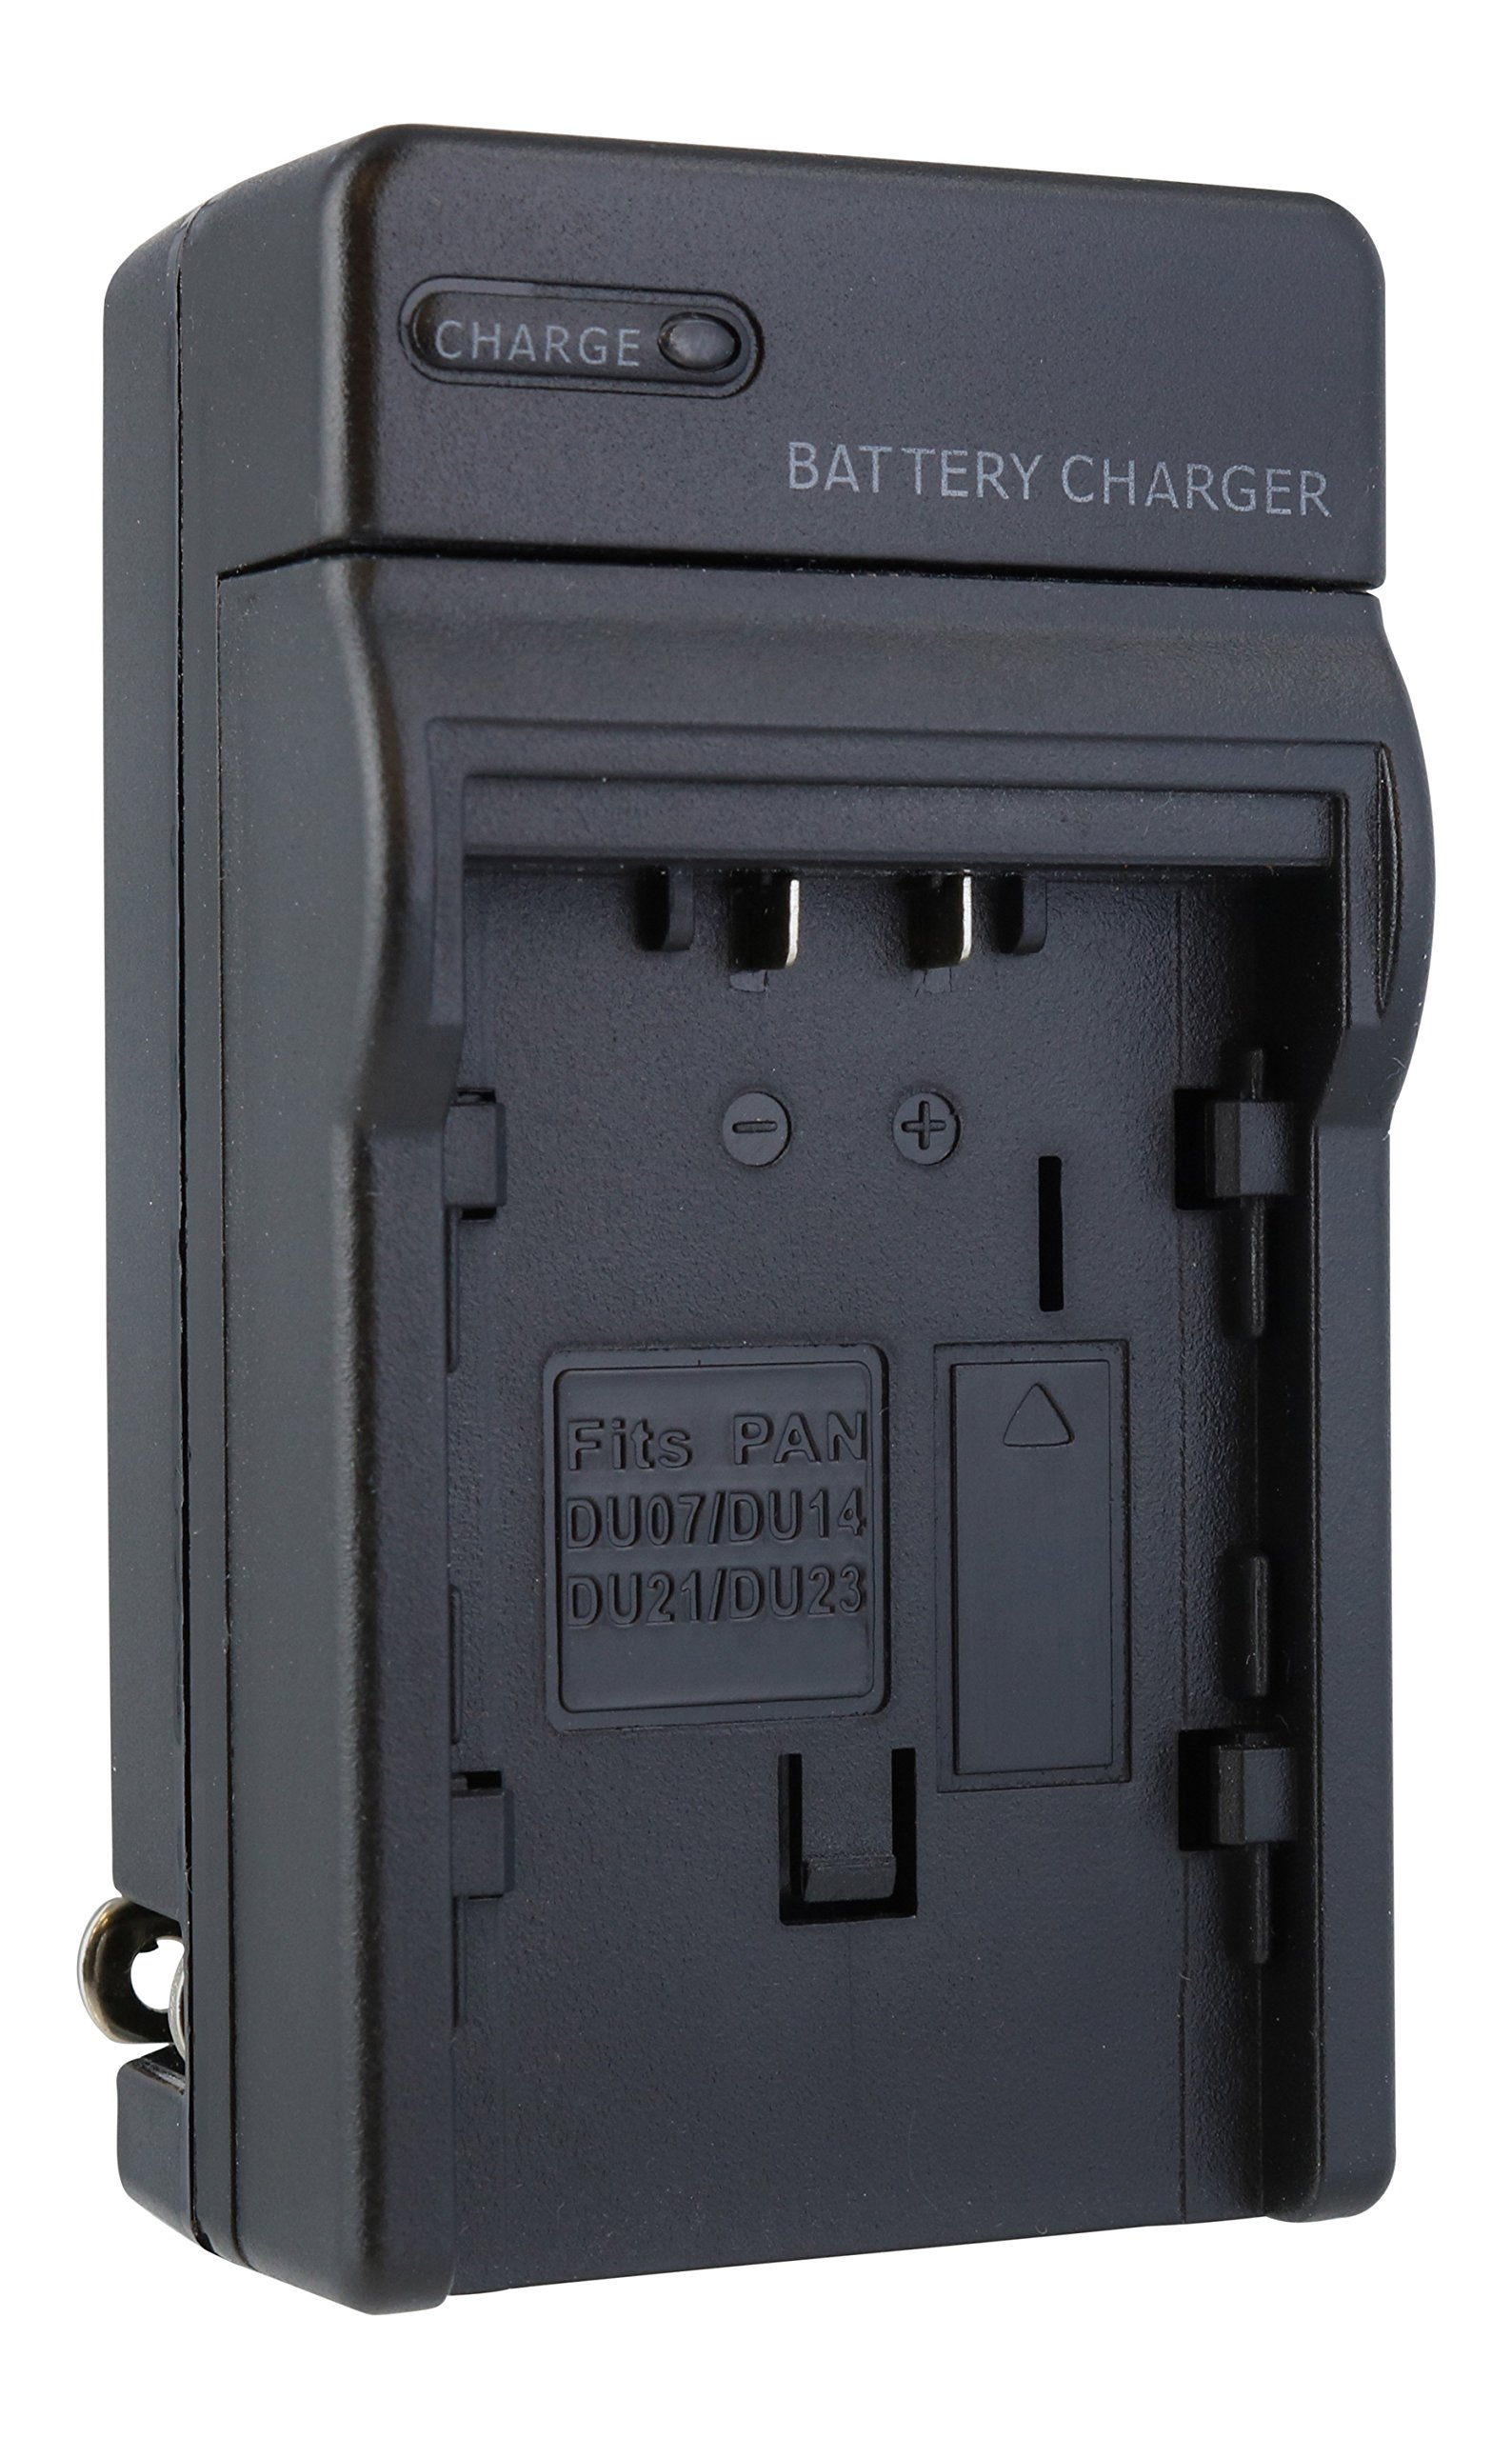 TechFuel Battery Charger Kit Charges Hitachi DZ-BP07PW Battery - For Home, Car and Travel Use